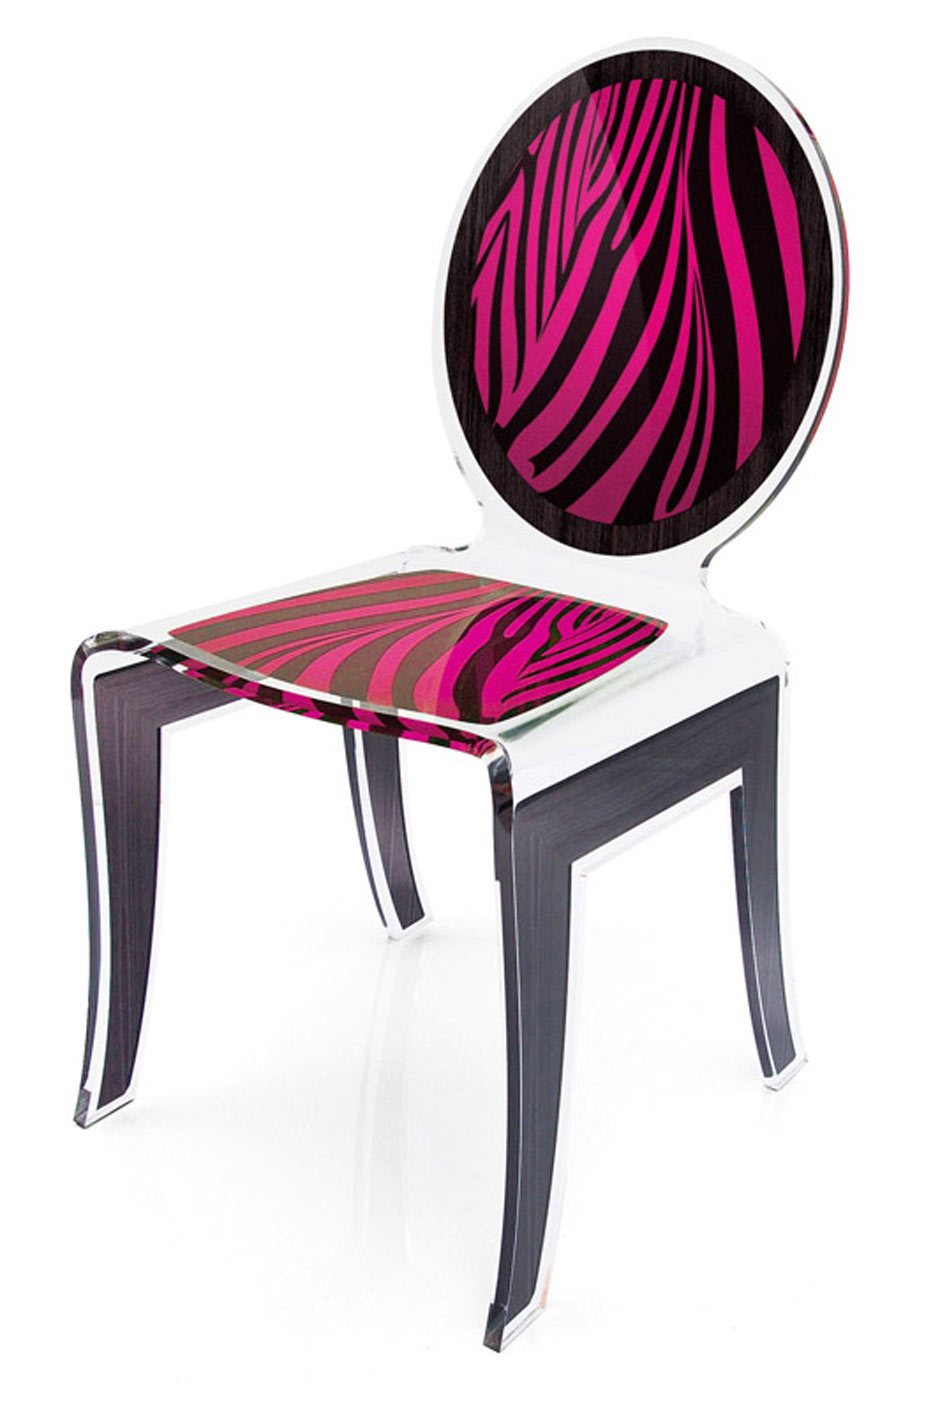 chaise m daillon wild z bre rose acrila sp cialiste du plexiglas r f 11030429. Black Bedroom Furniture Sets. Home Design Ideas